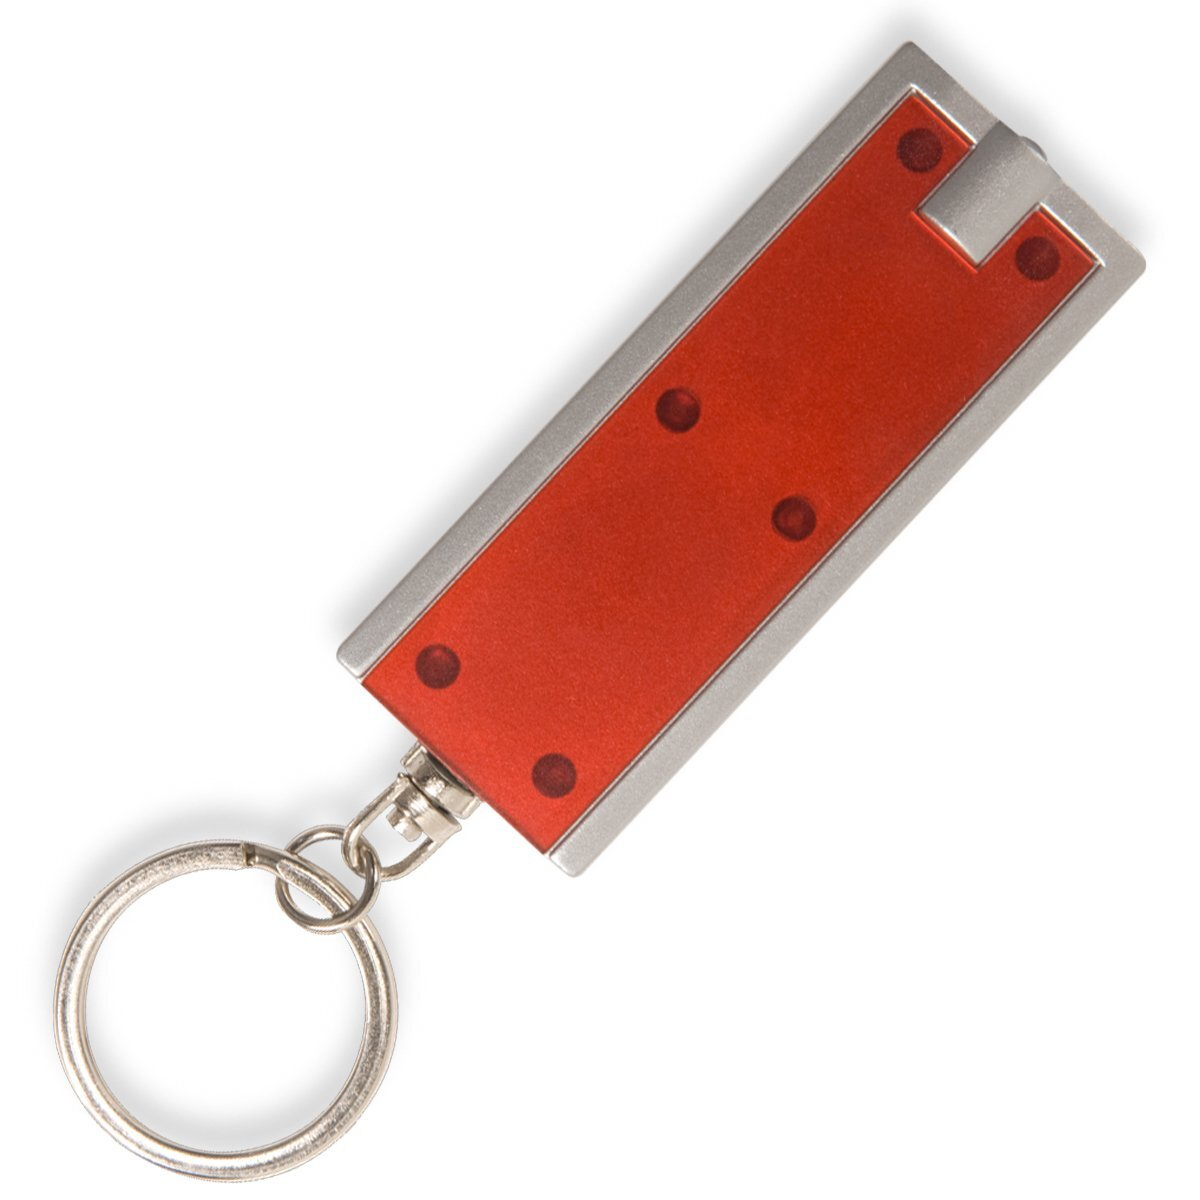 Slimline Key Light